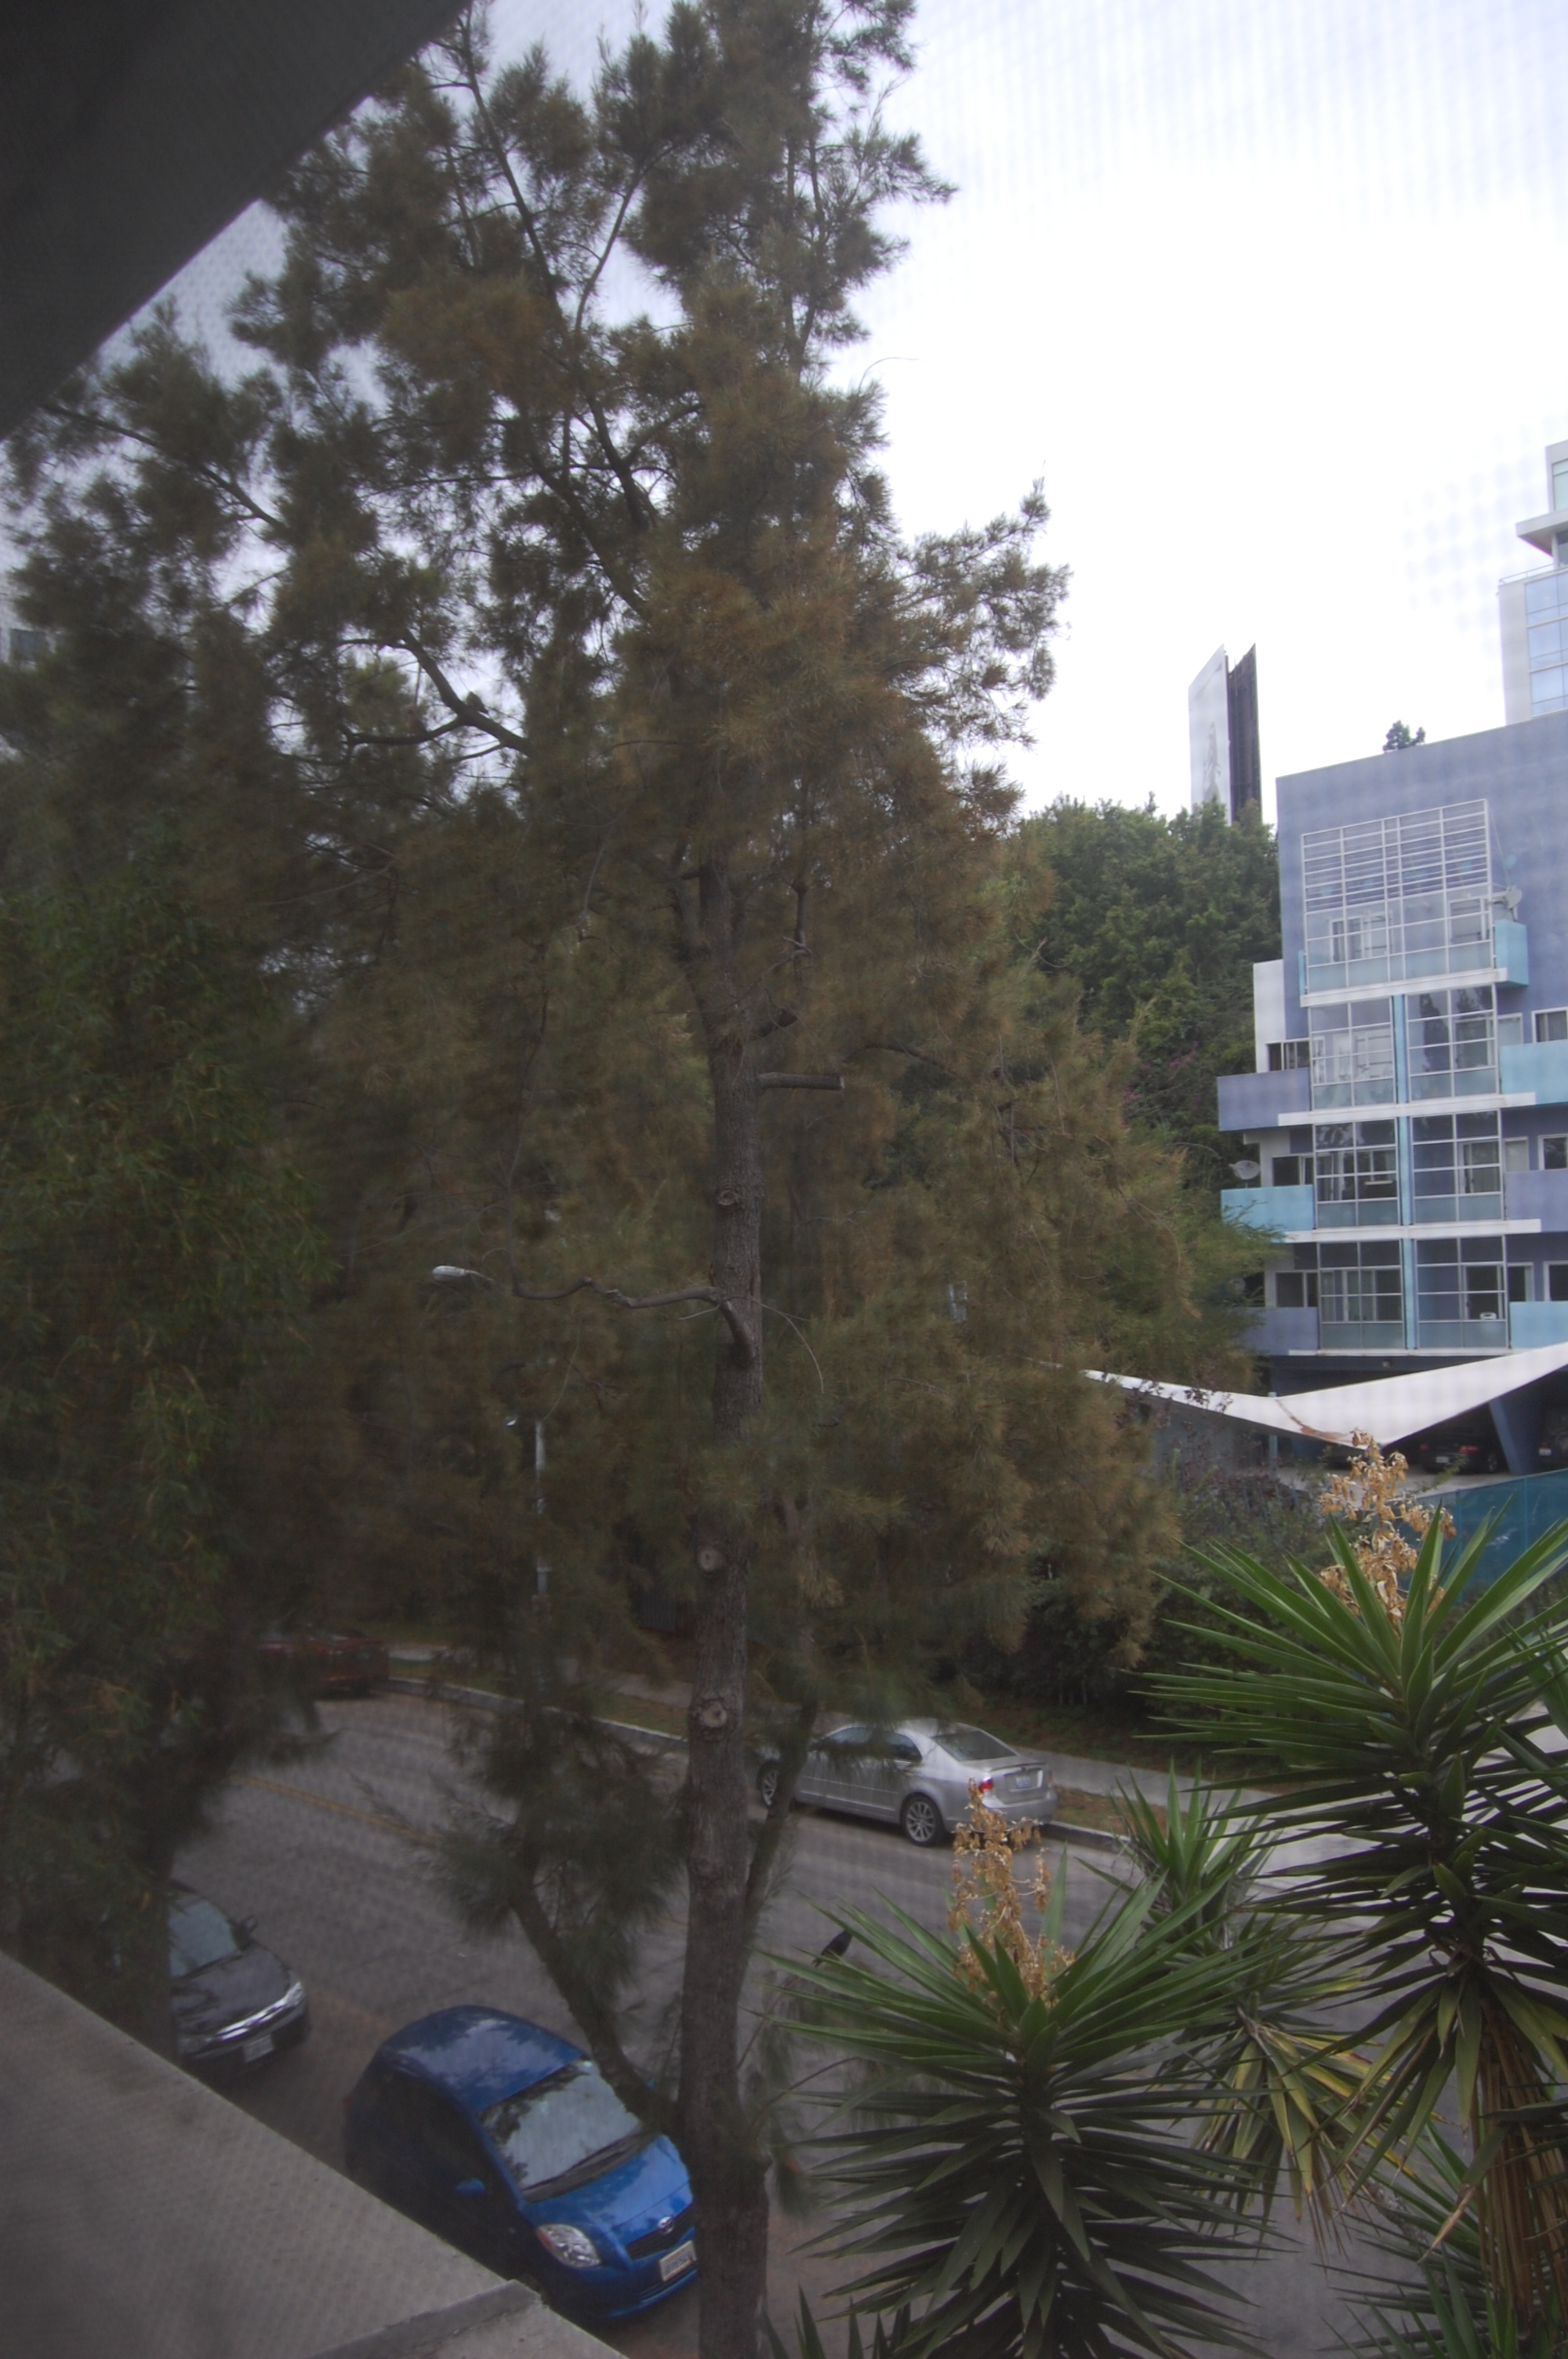 House of Blues, Sanset Blvd, West Hollywood -- view from De Longpre Ave